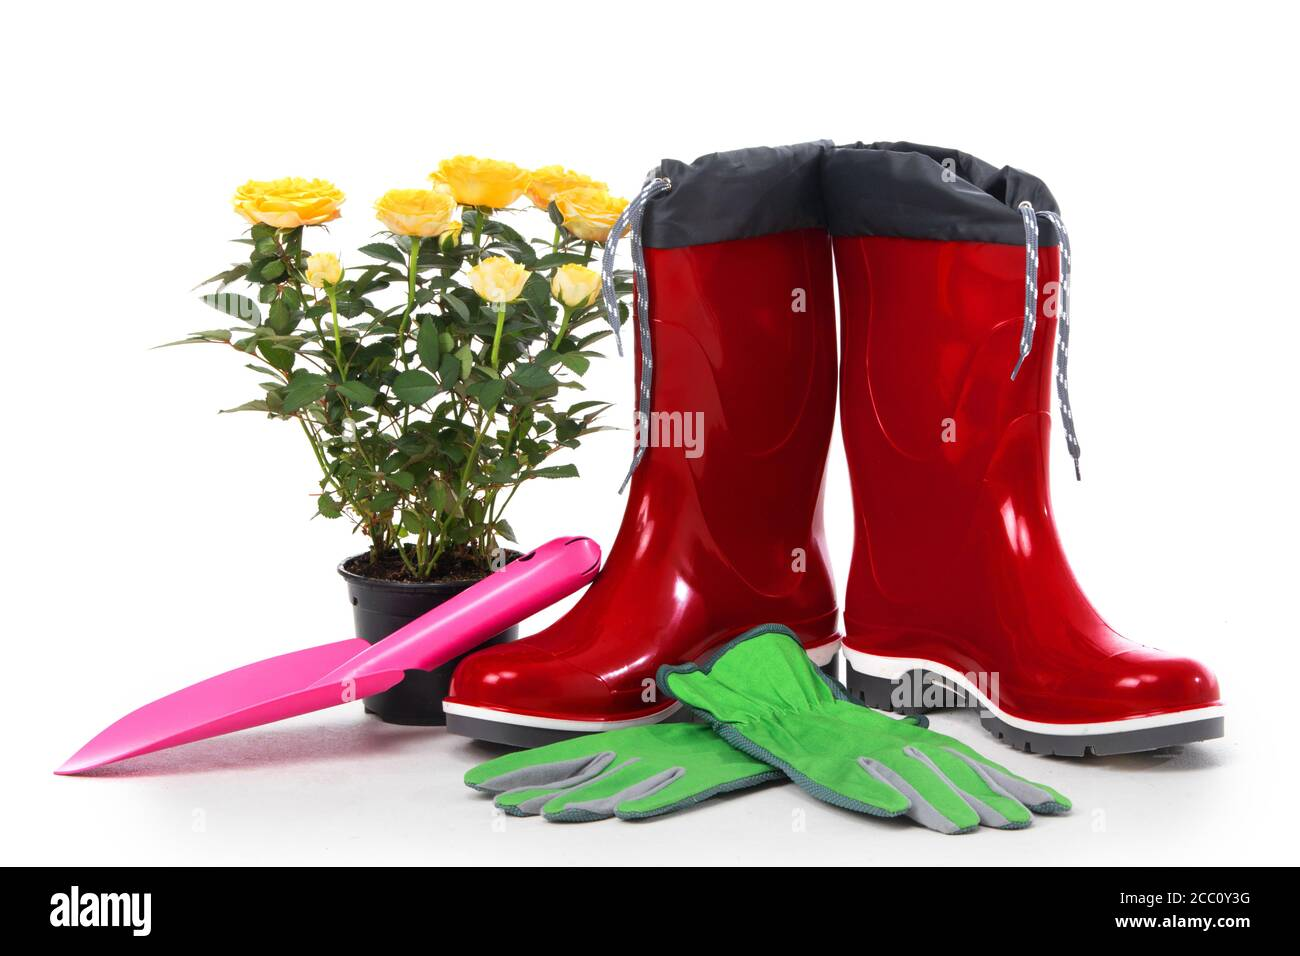 Garden tools with flower pot and boots isolated on white background Stock Photo